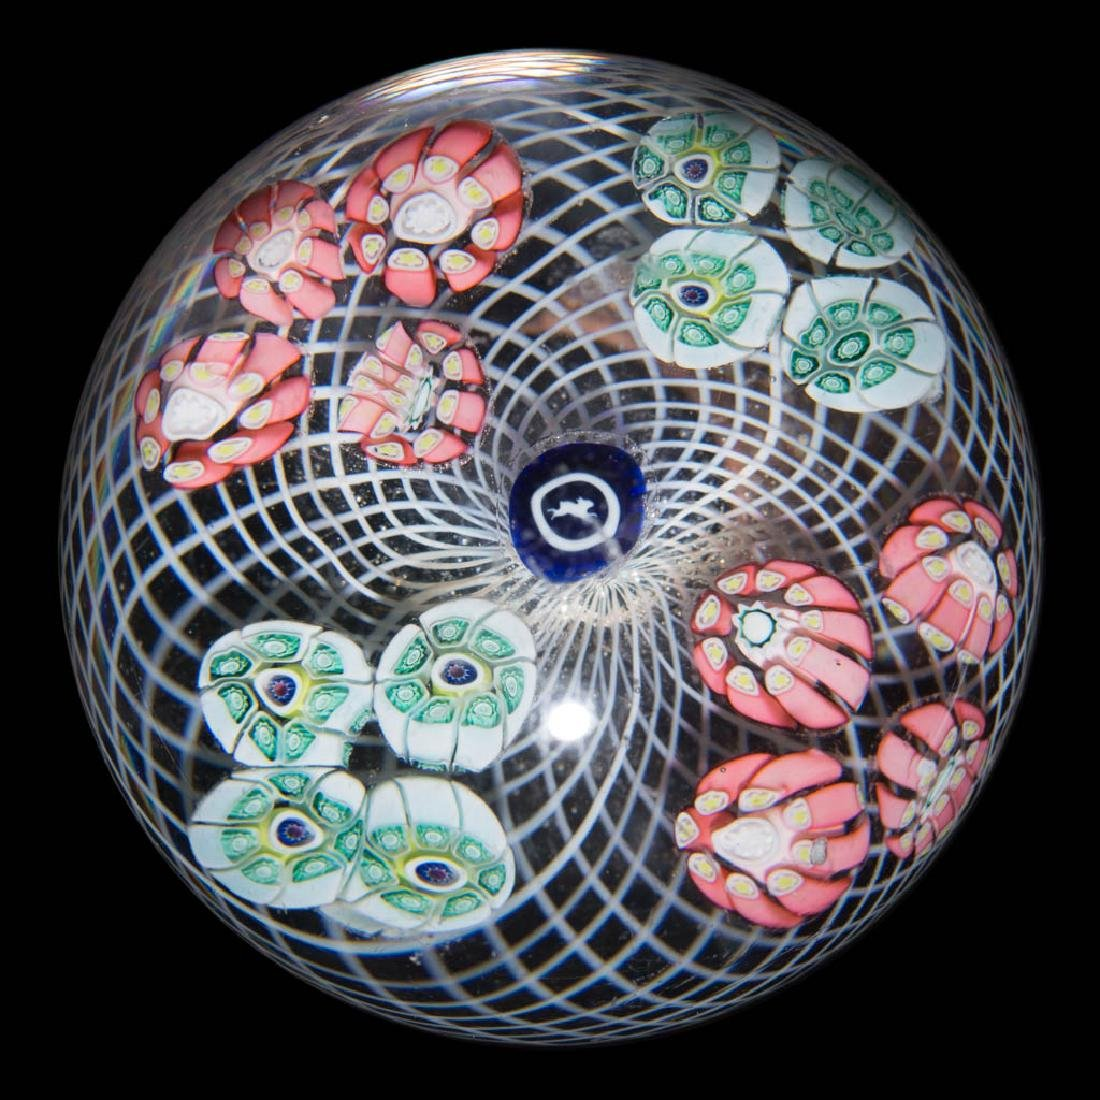 ANTIQUE NEW ENGLAND GLASS CO. MILLEFIORI PAPERWEIGHT